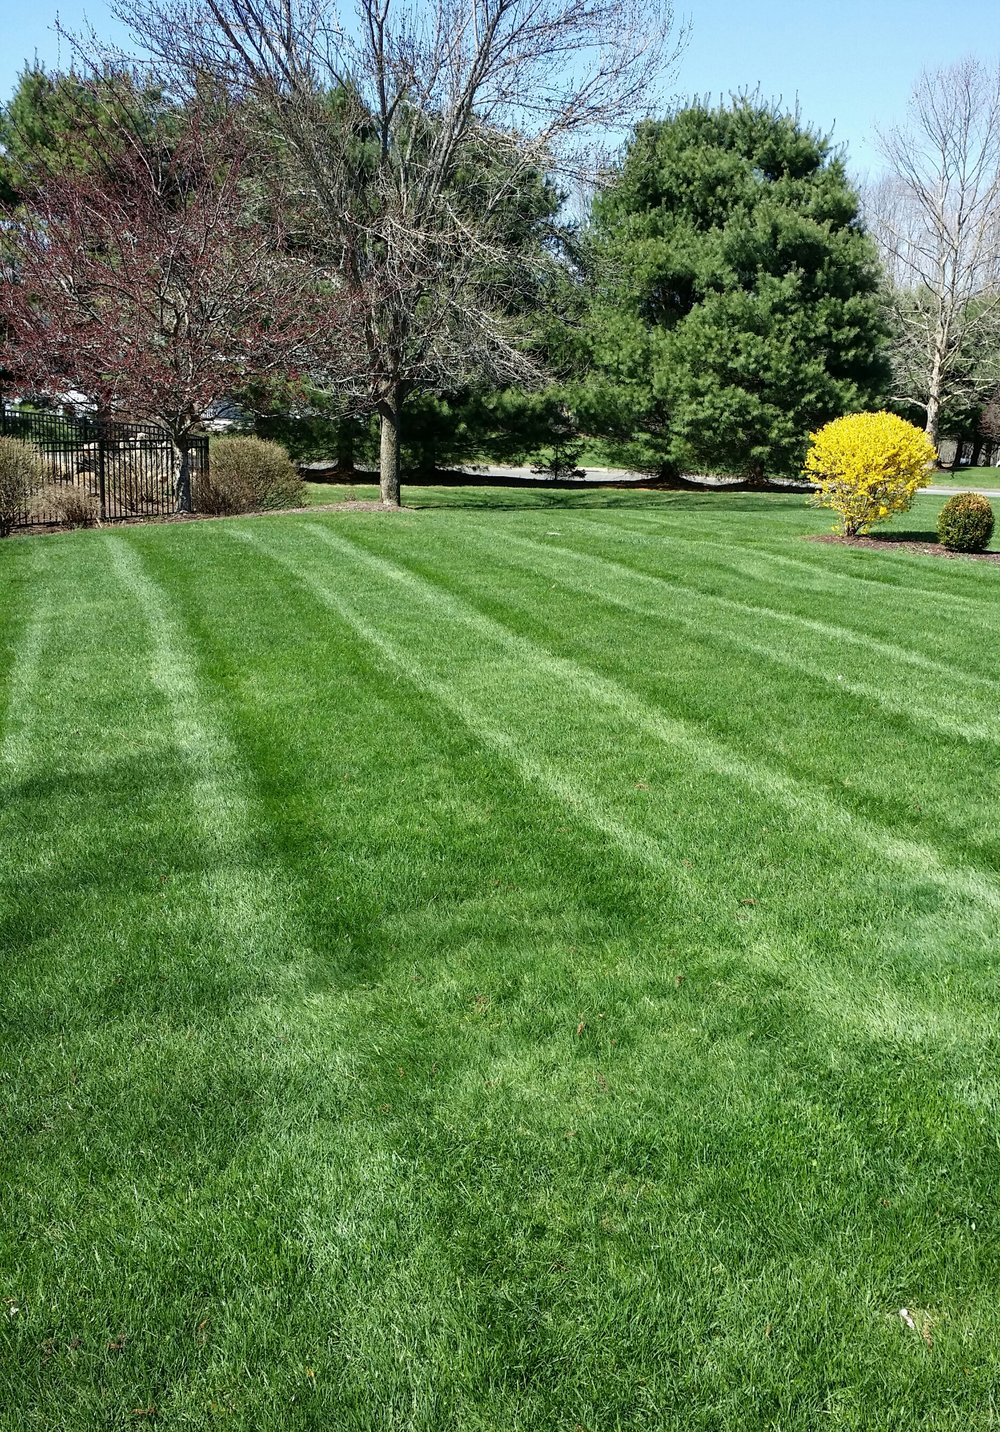 LAWN MAINTENANCE -  Shevlin Landscape Services approaches lawn maintenance as a low intensive, systemic program; focusing on and specializing in creating a healthy growing environment for which the turf can thrive.  Offering mowing services, dethatching, aerating, custom fertilization programs, and overseeding.